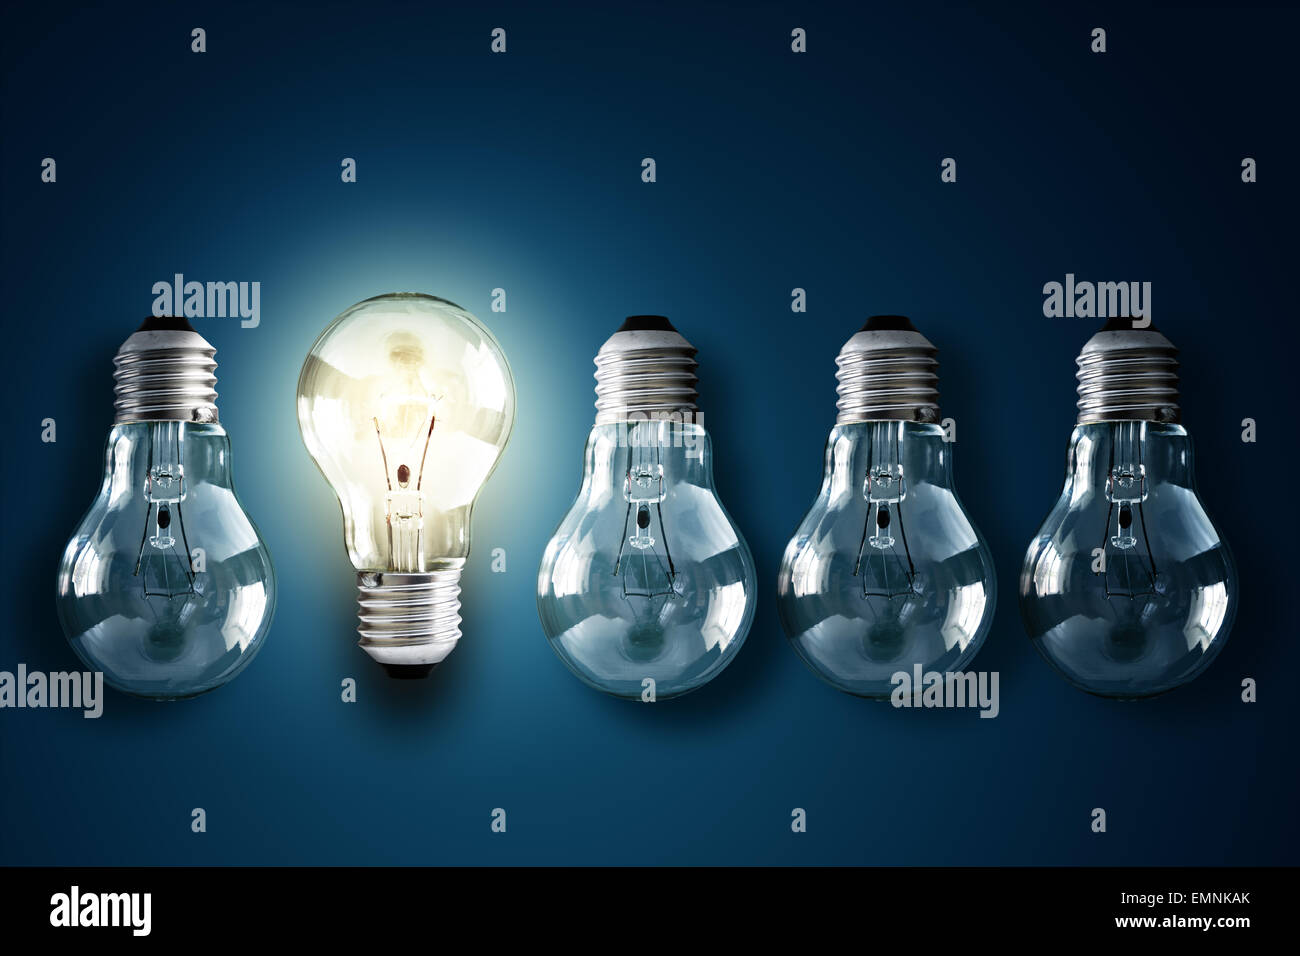 Creativity and innovation - Stock Image